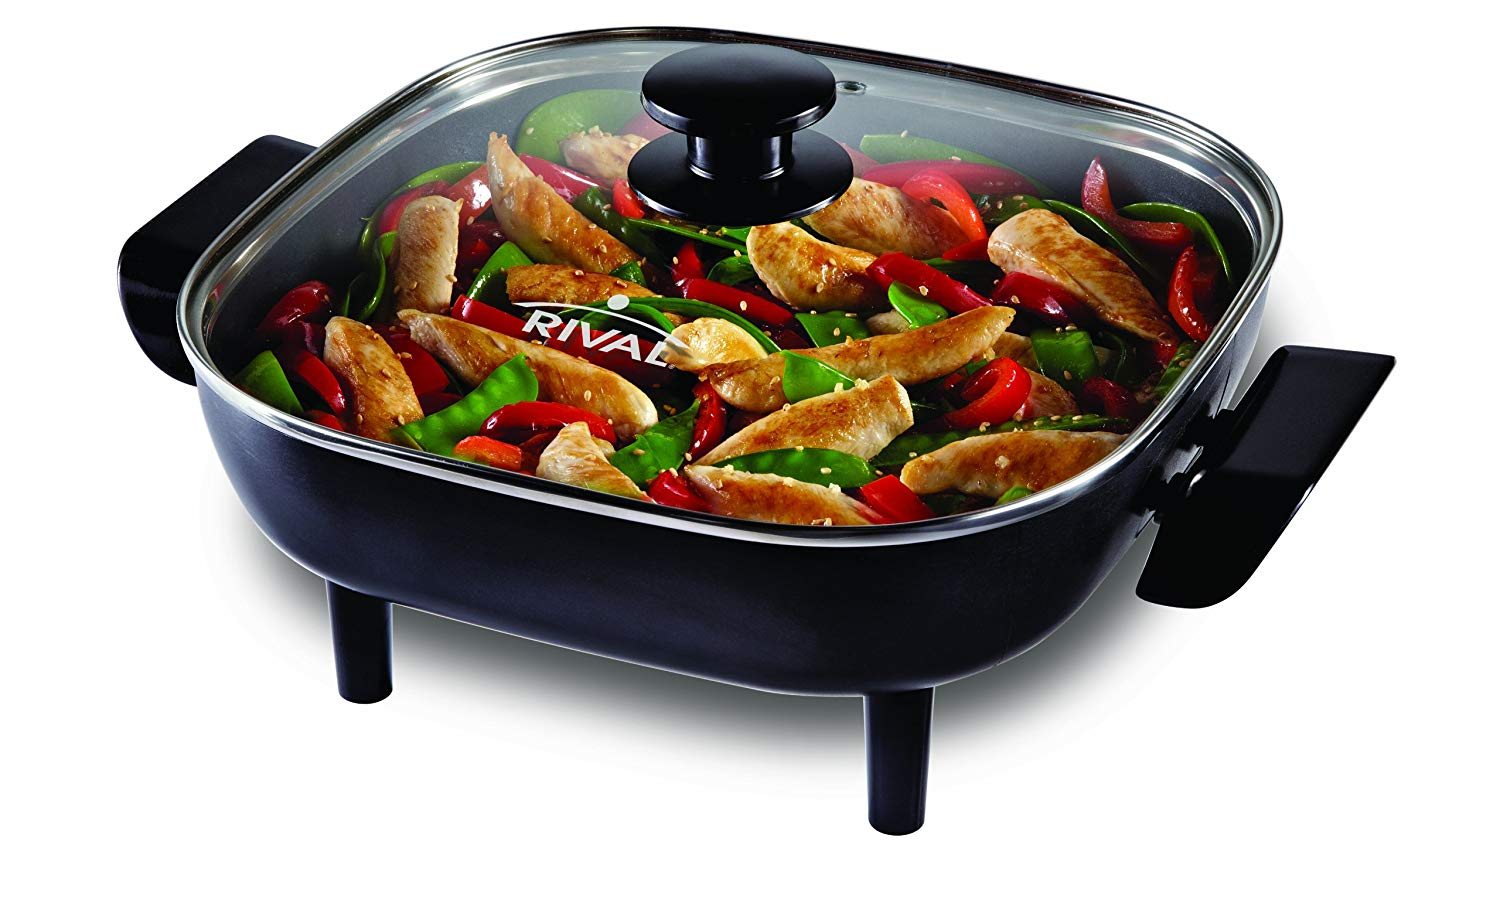 10 Best Electric Skillets of 2019 | Reviews 15